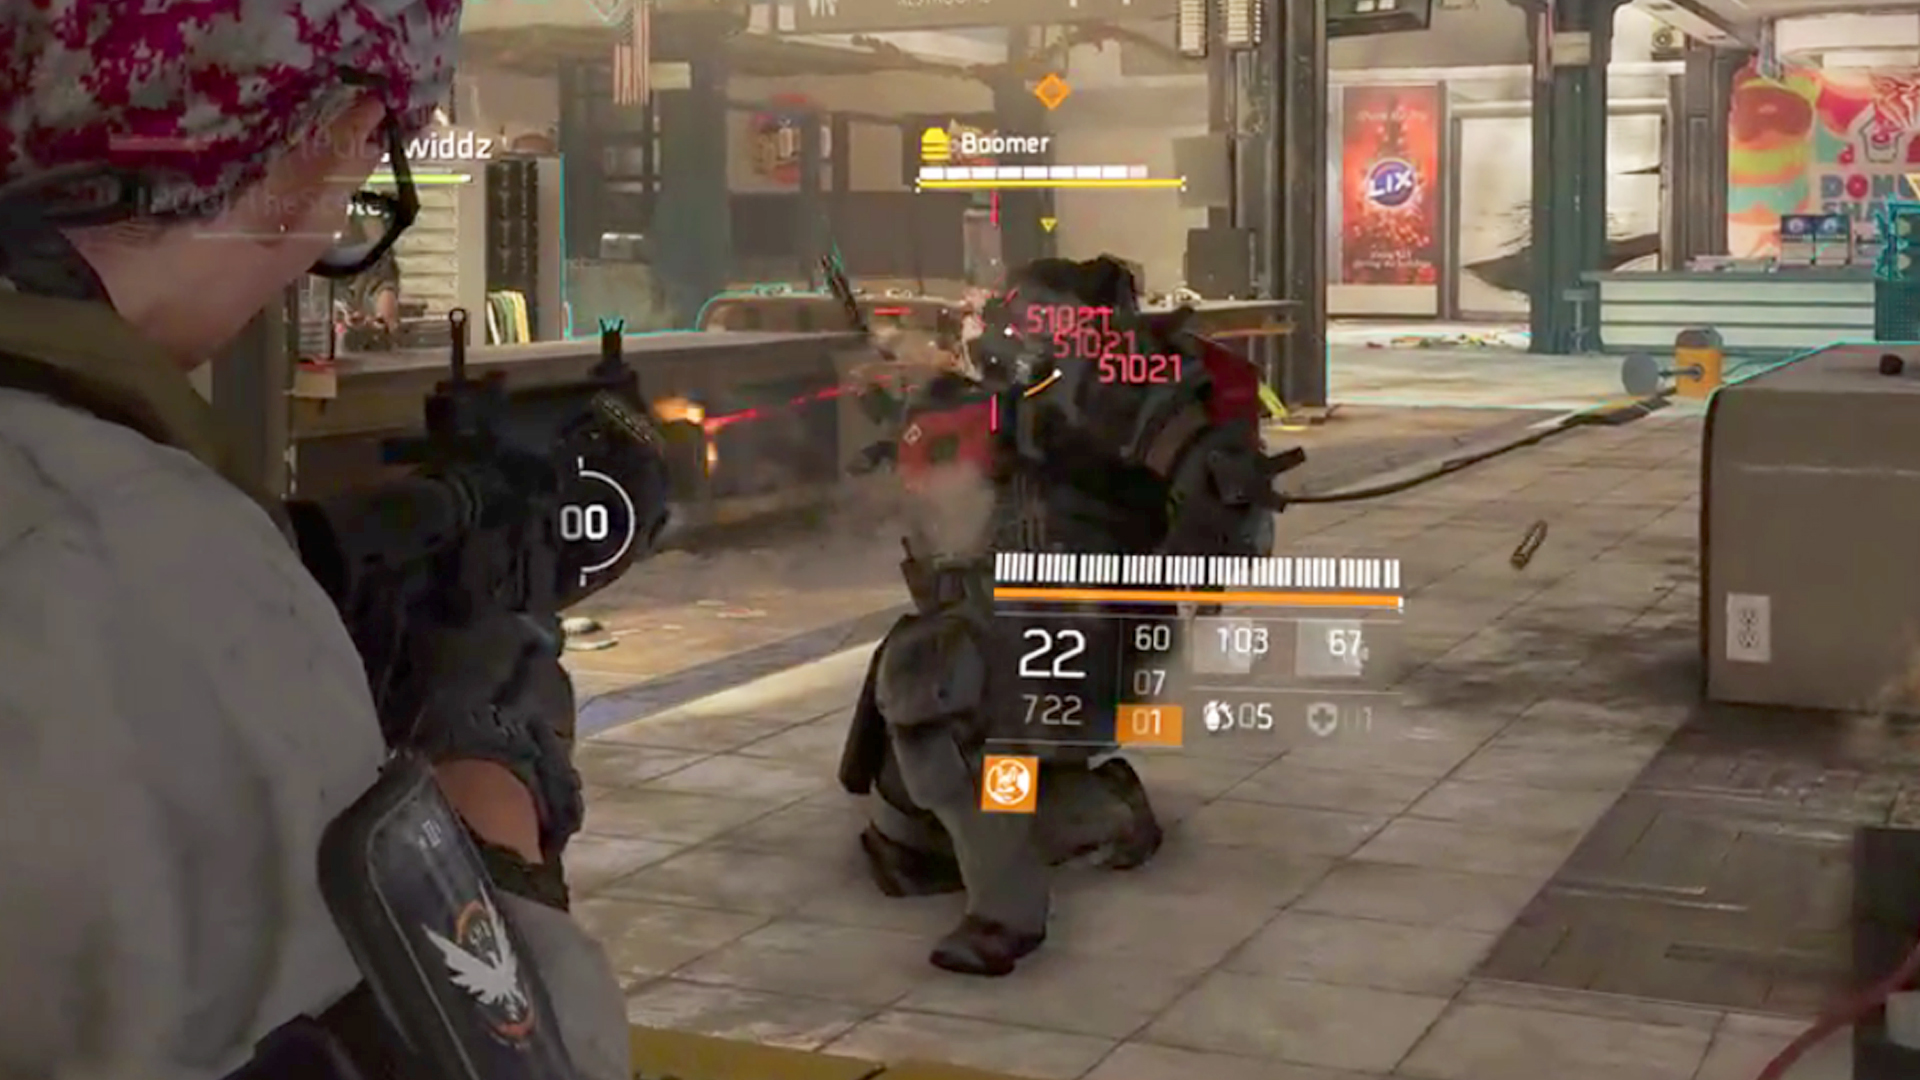 Division 2 Boomer guide: How to beat Boomer in the Division